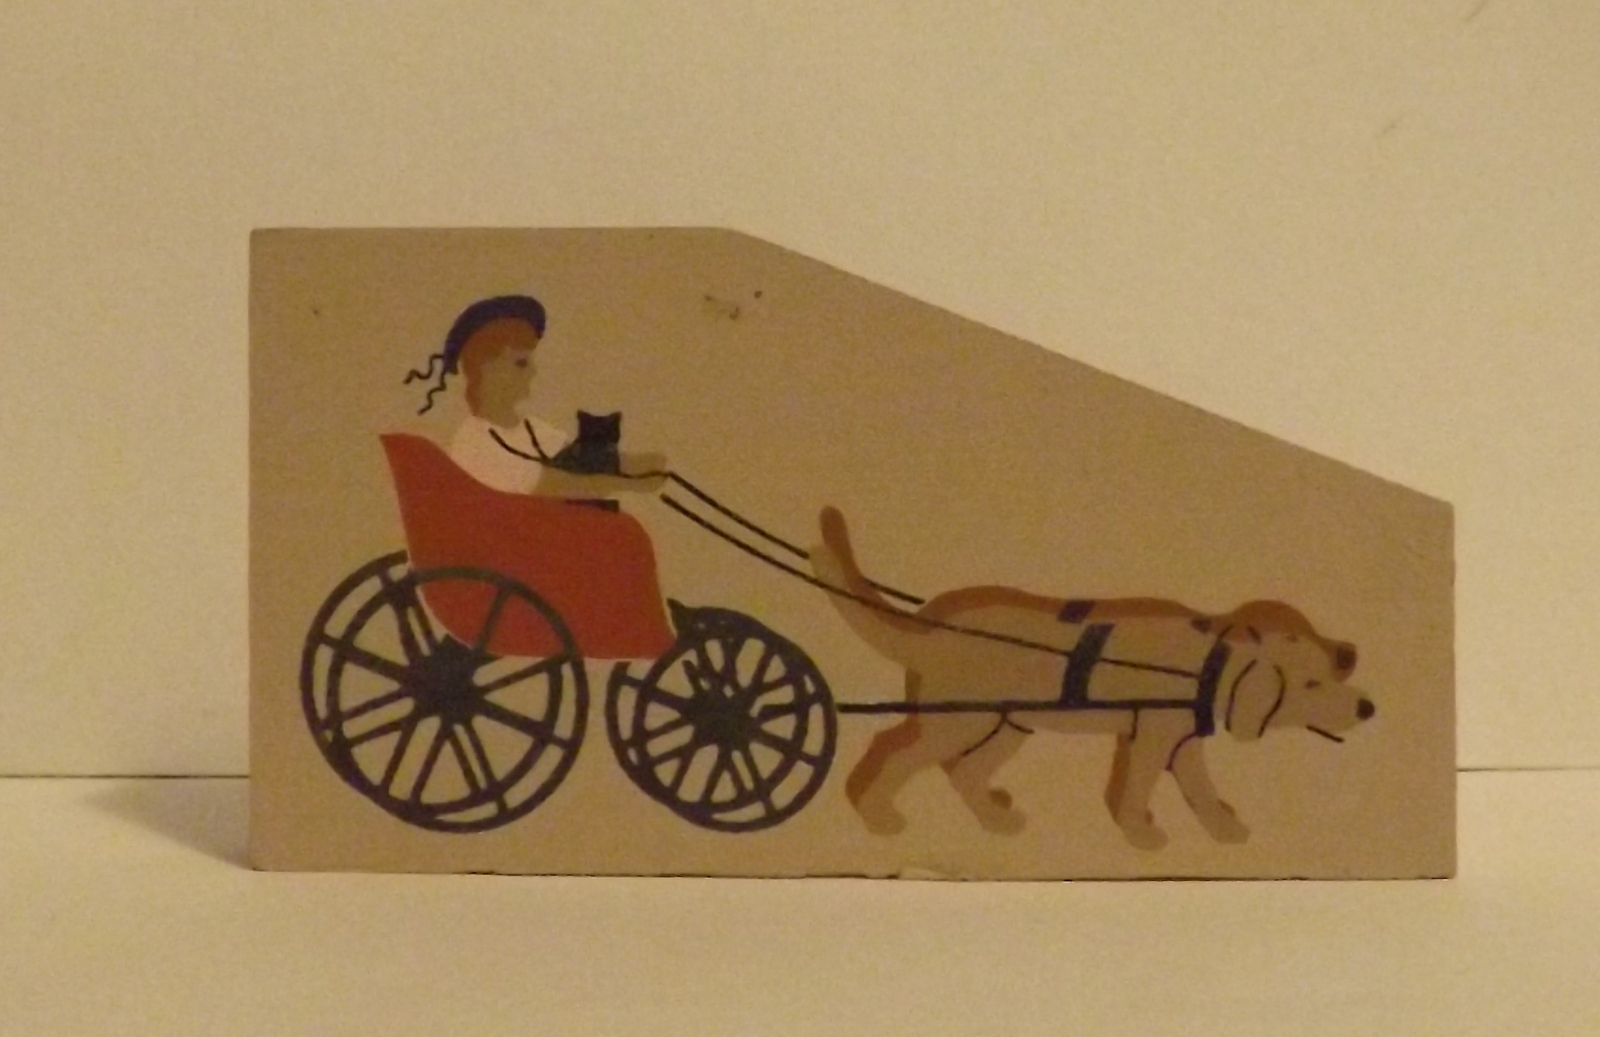 Cats Meow Accessory Lady in Buggy Being Pulled by Dogs 1994